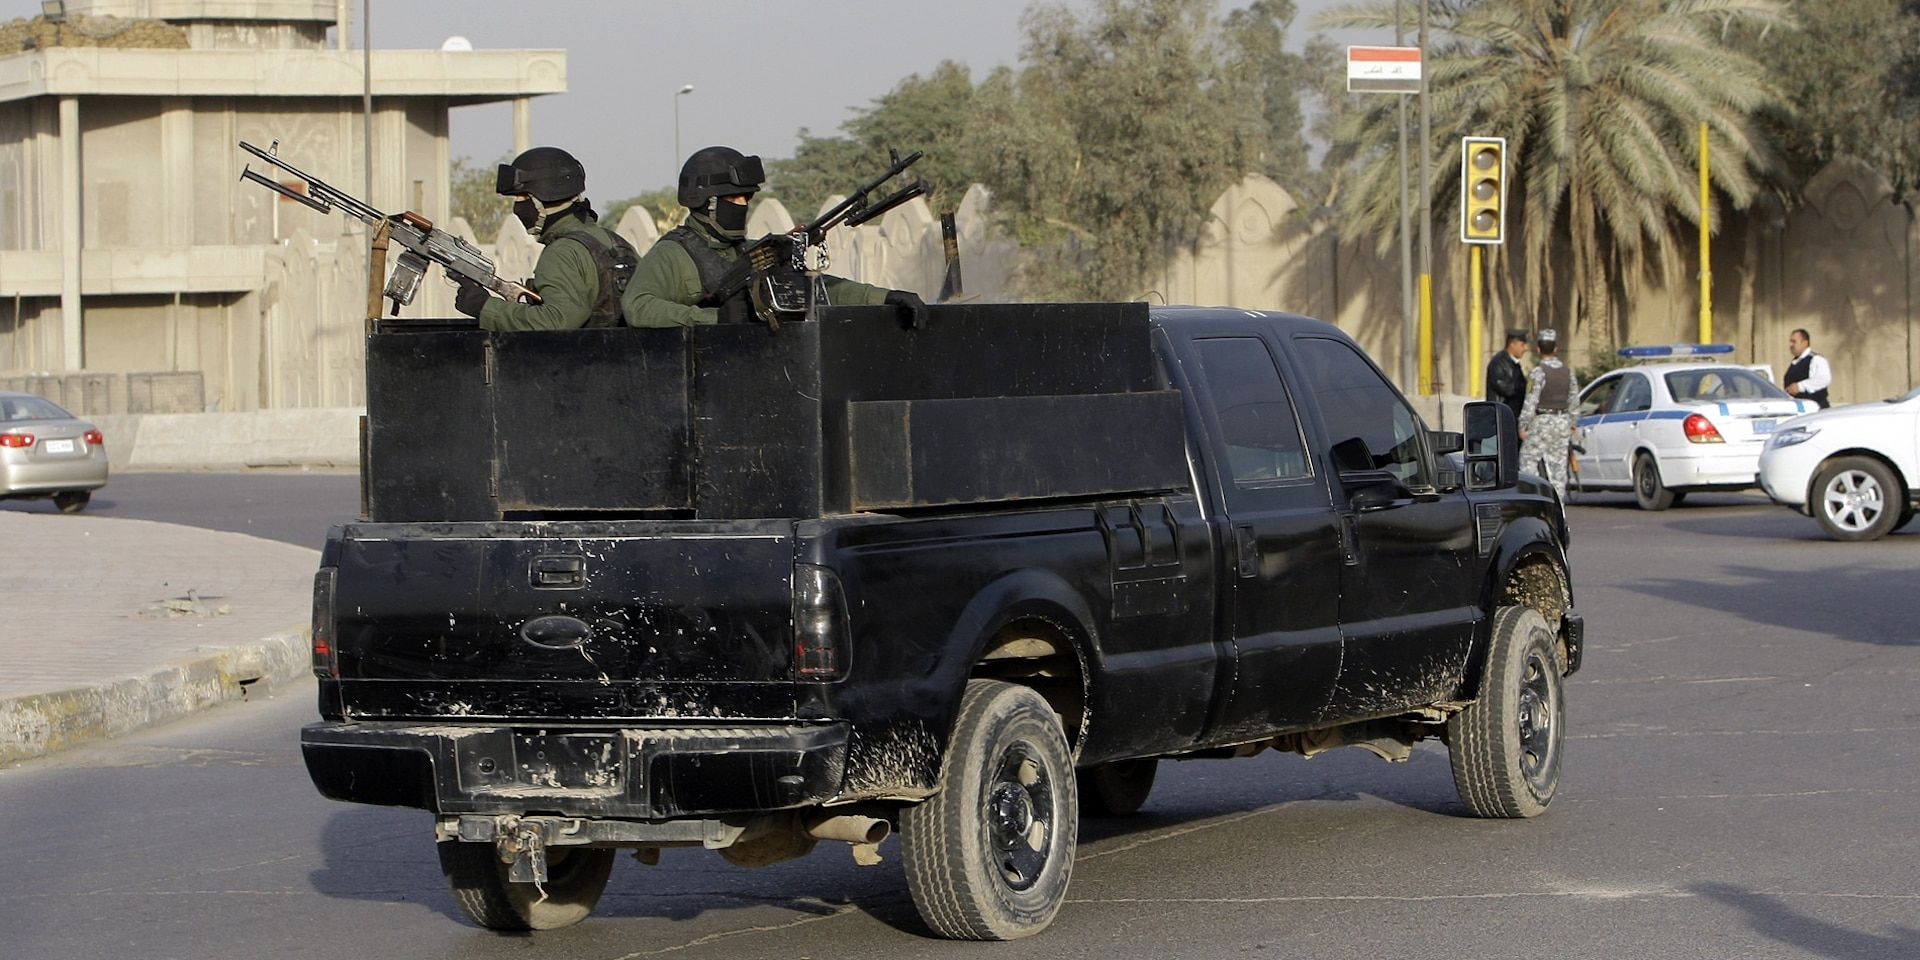 Two masked soldiers from a private security company stand armed to the teeth in the back of a black pick-up truck.